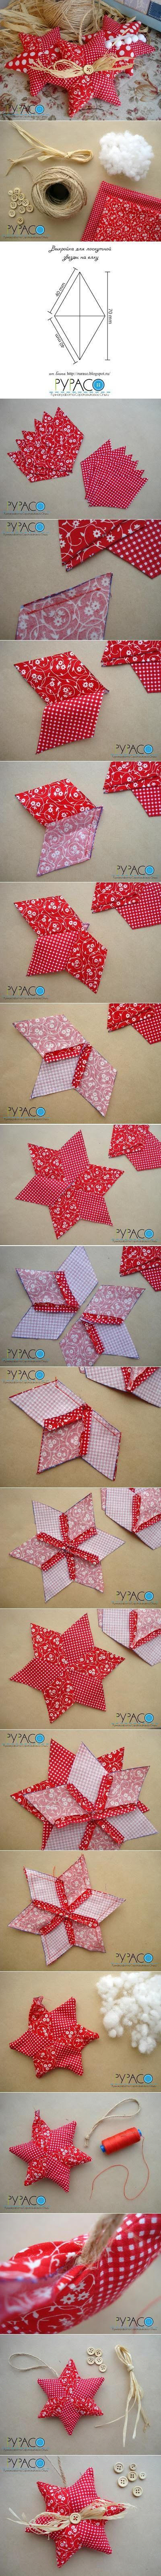 DIY Little Fabric Star - love these; wish there was a pattern